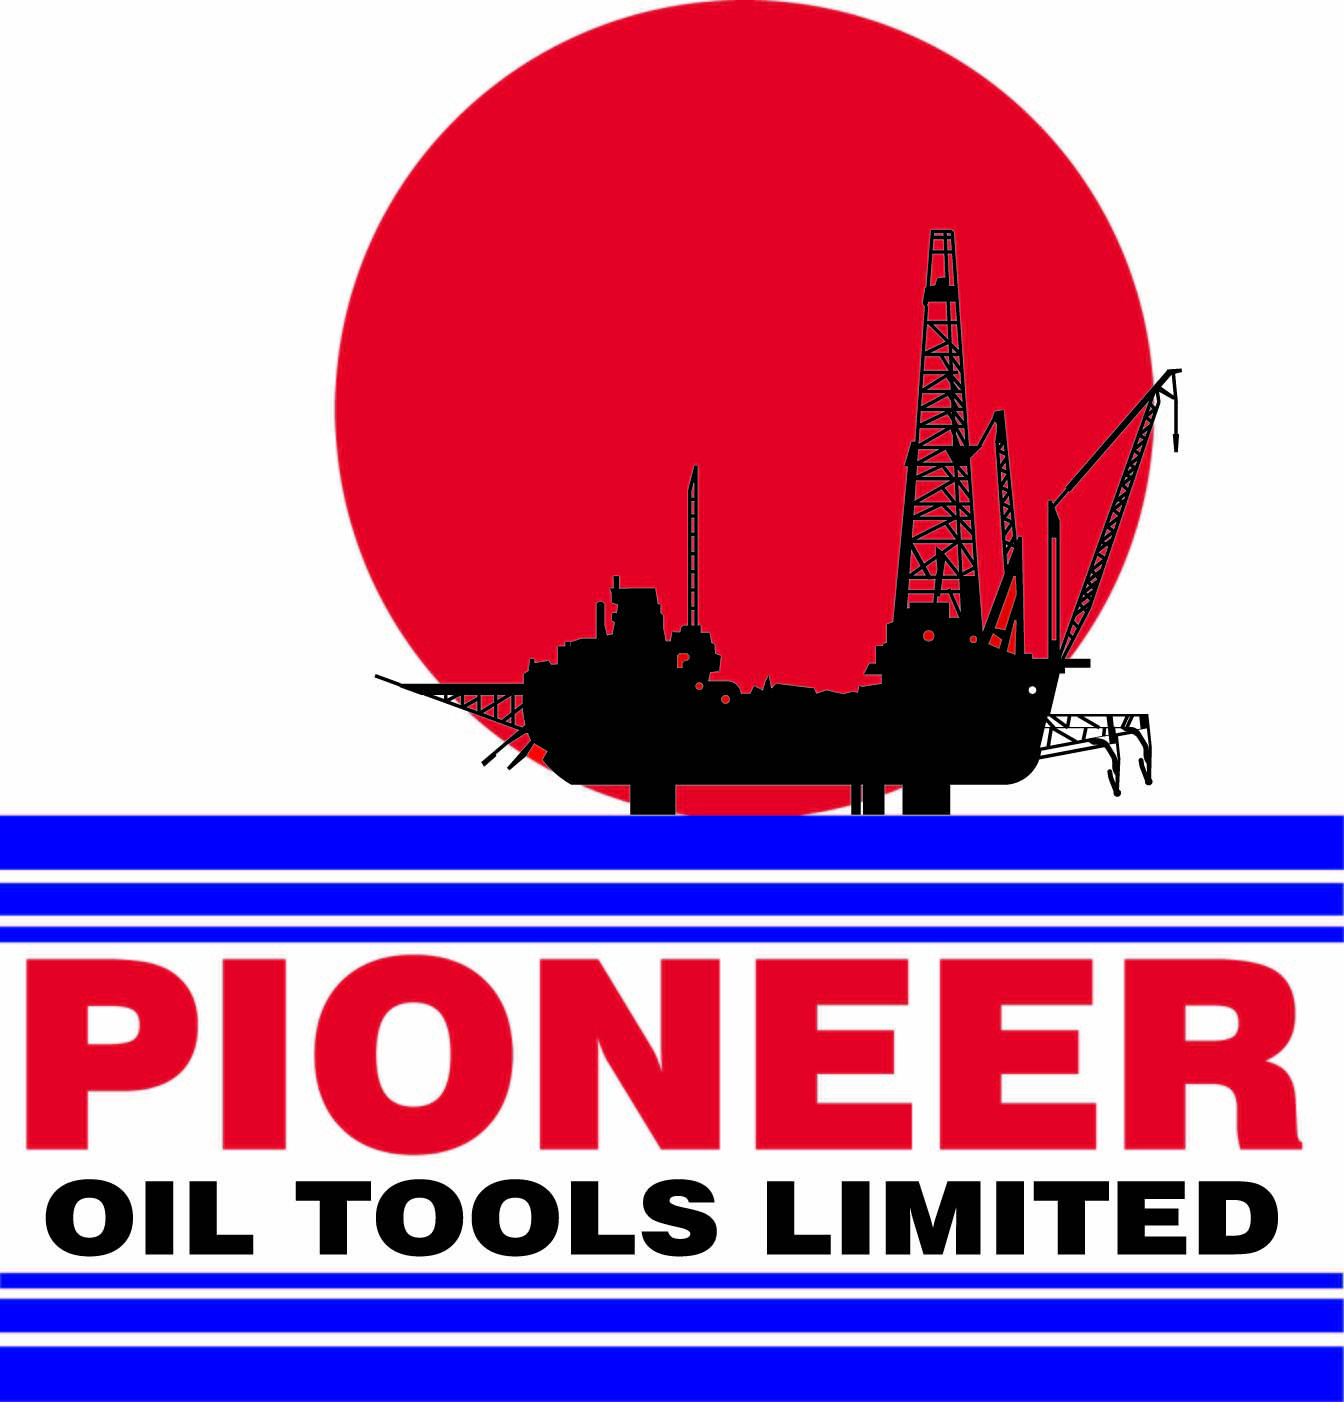 PIONEER OIL TOOLS Limited